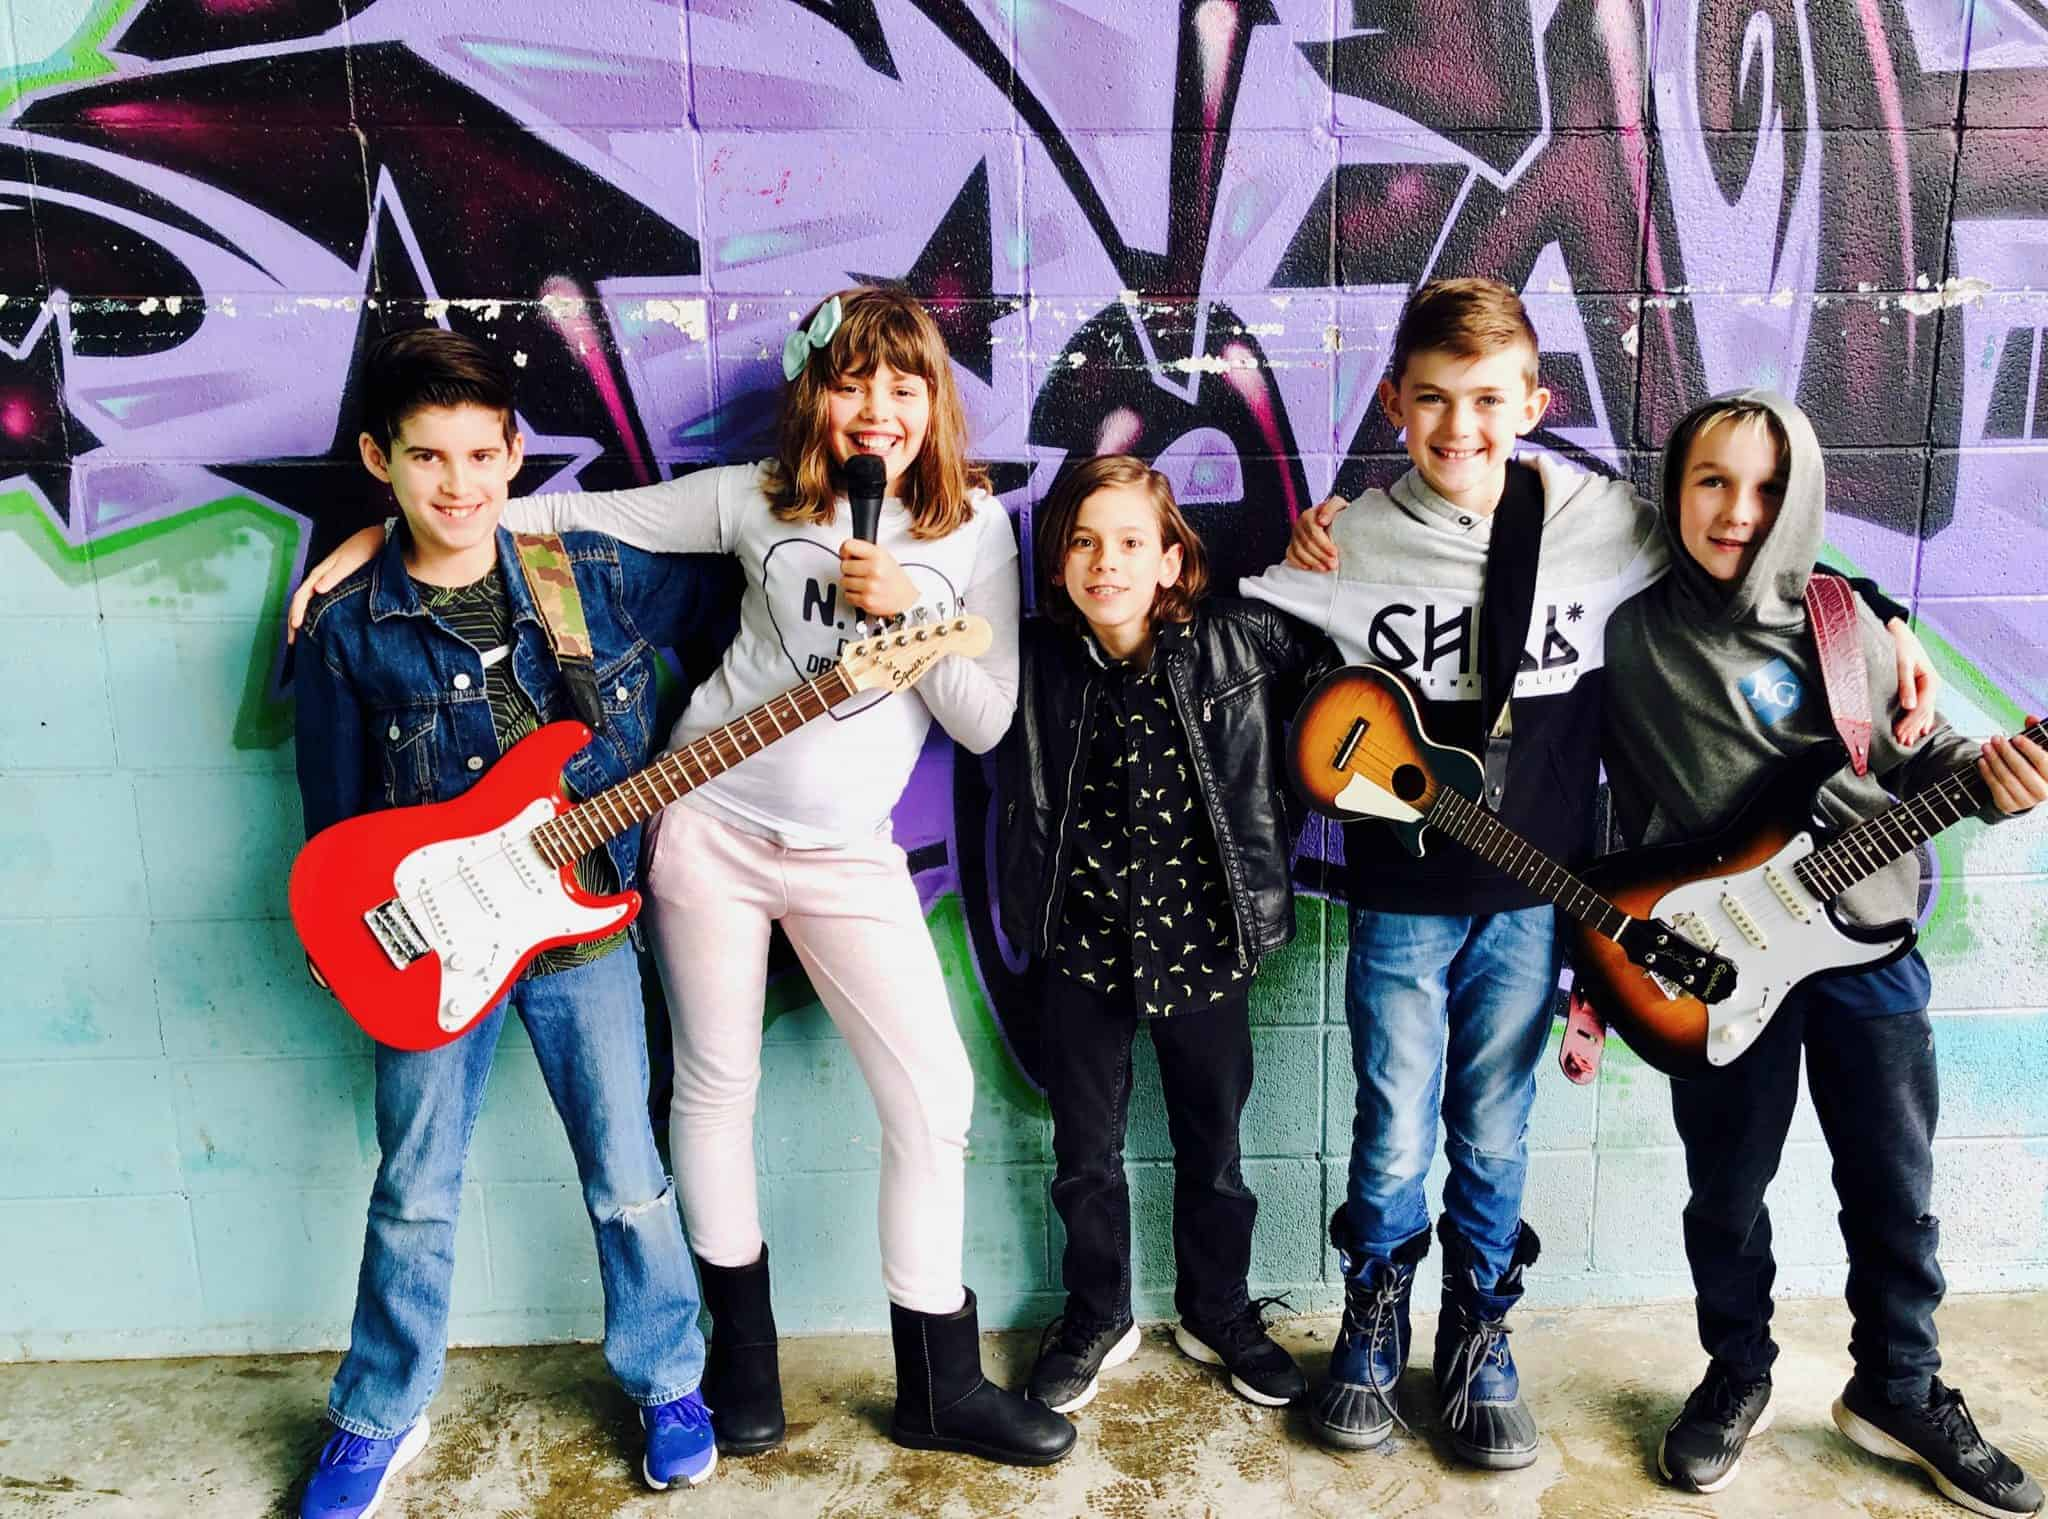 Marshmell-o Salad, a rock band at Backbeat - the place for rock bands and music lessons